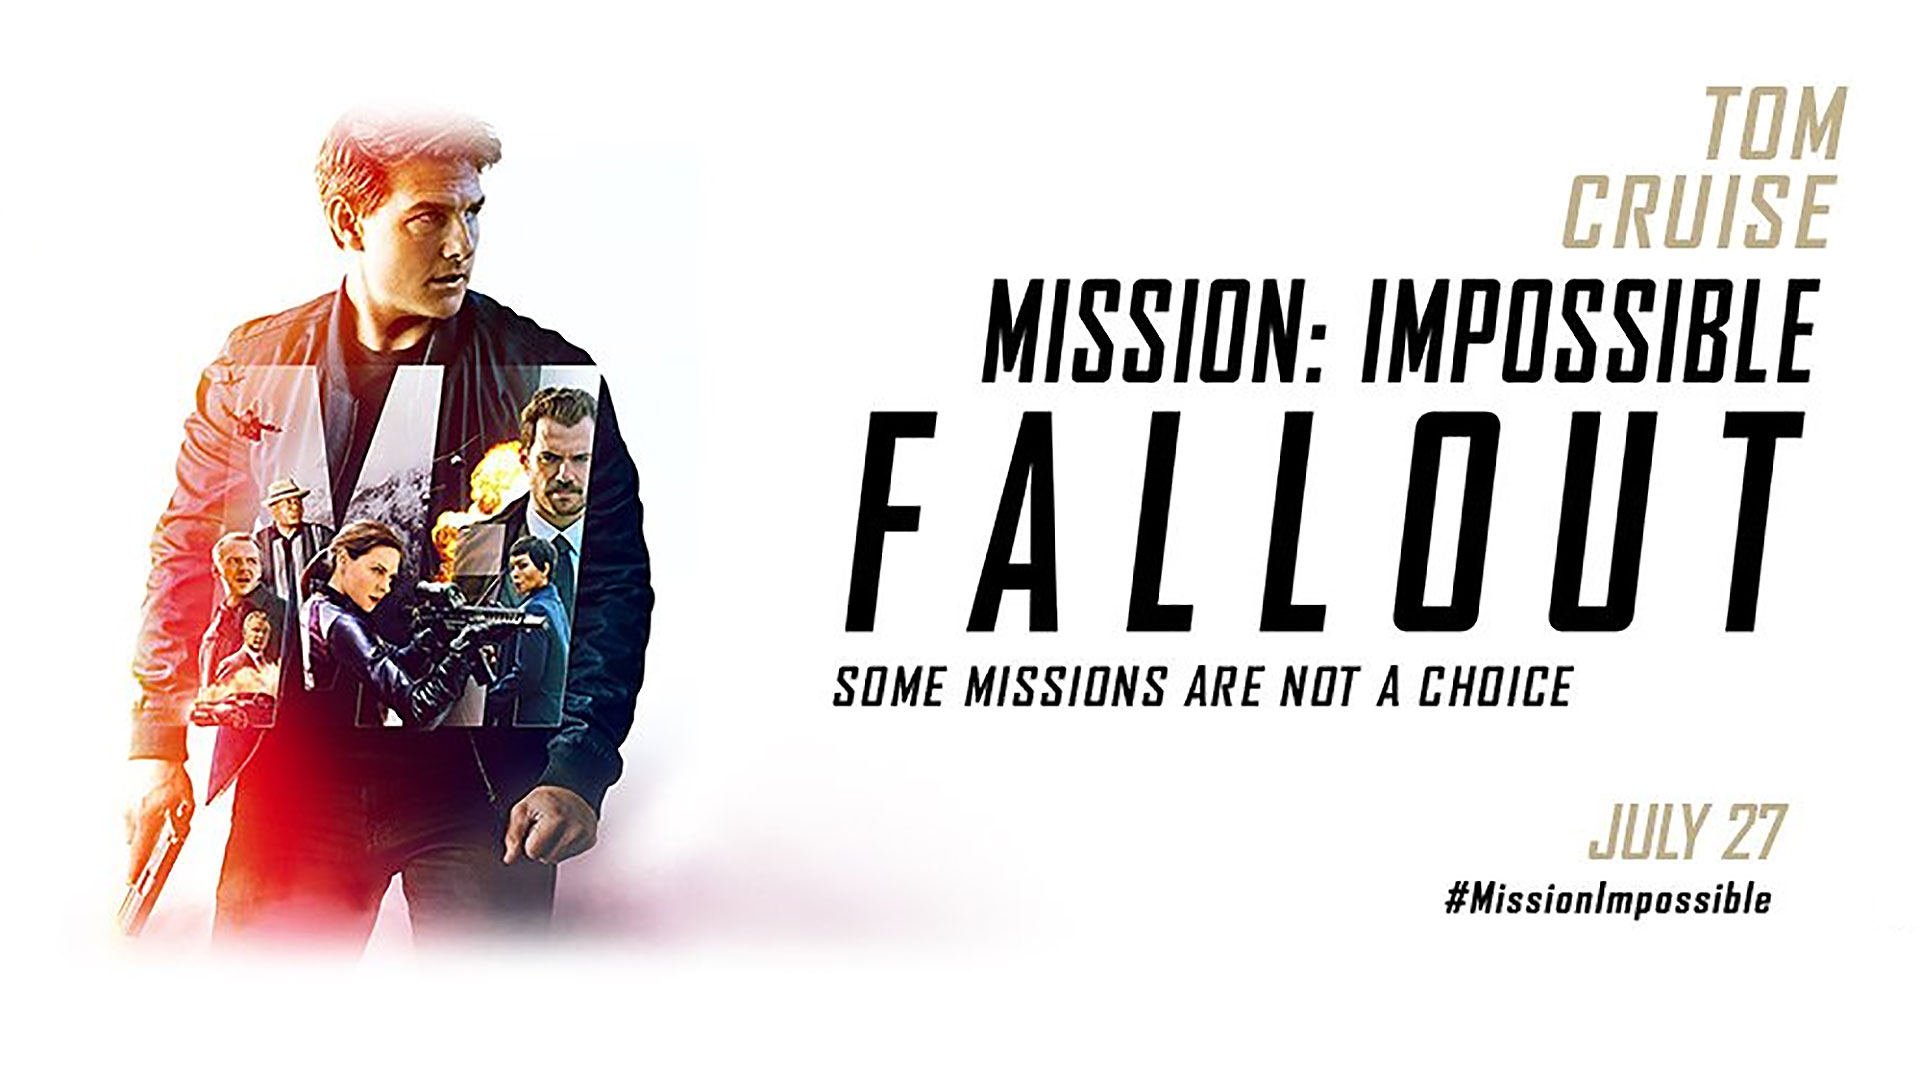 'Mission: Impossible - Fallout' - landscape artwork